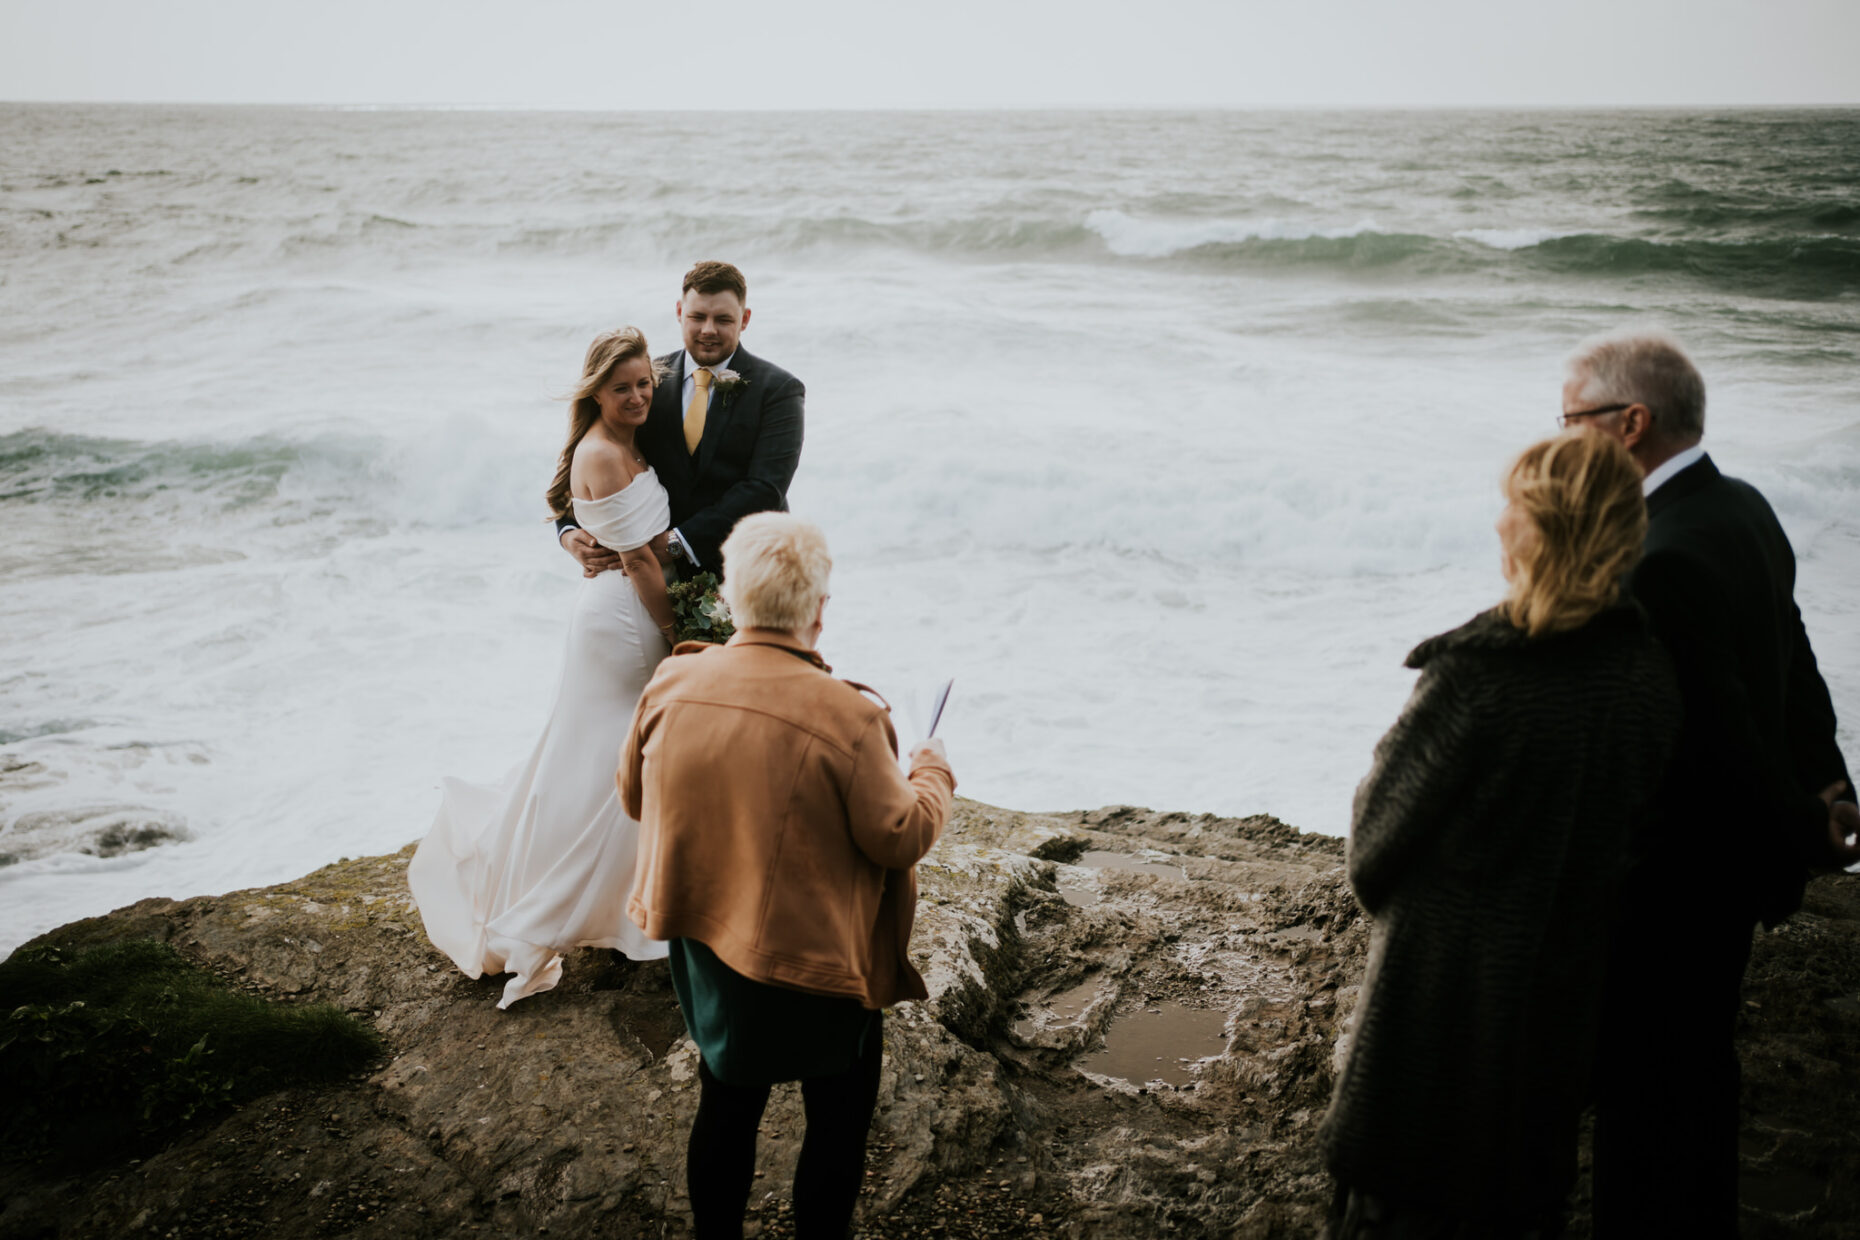 A celebrant conducts a ceremony on a dramatic cliff with a couple as the sea crashes behind them and her parents watch